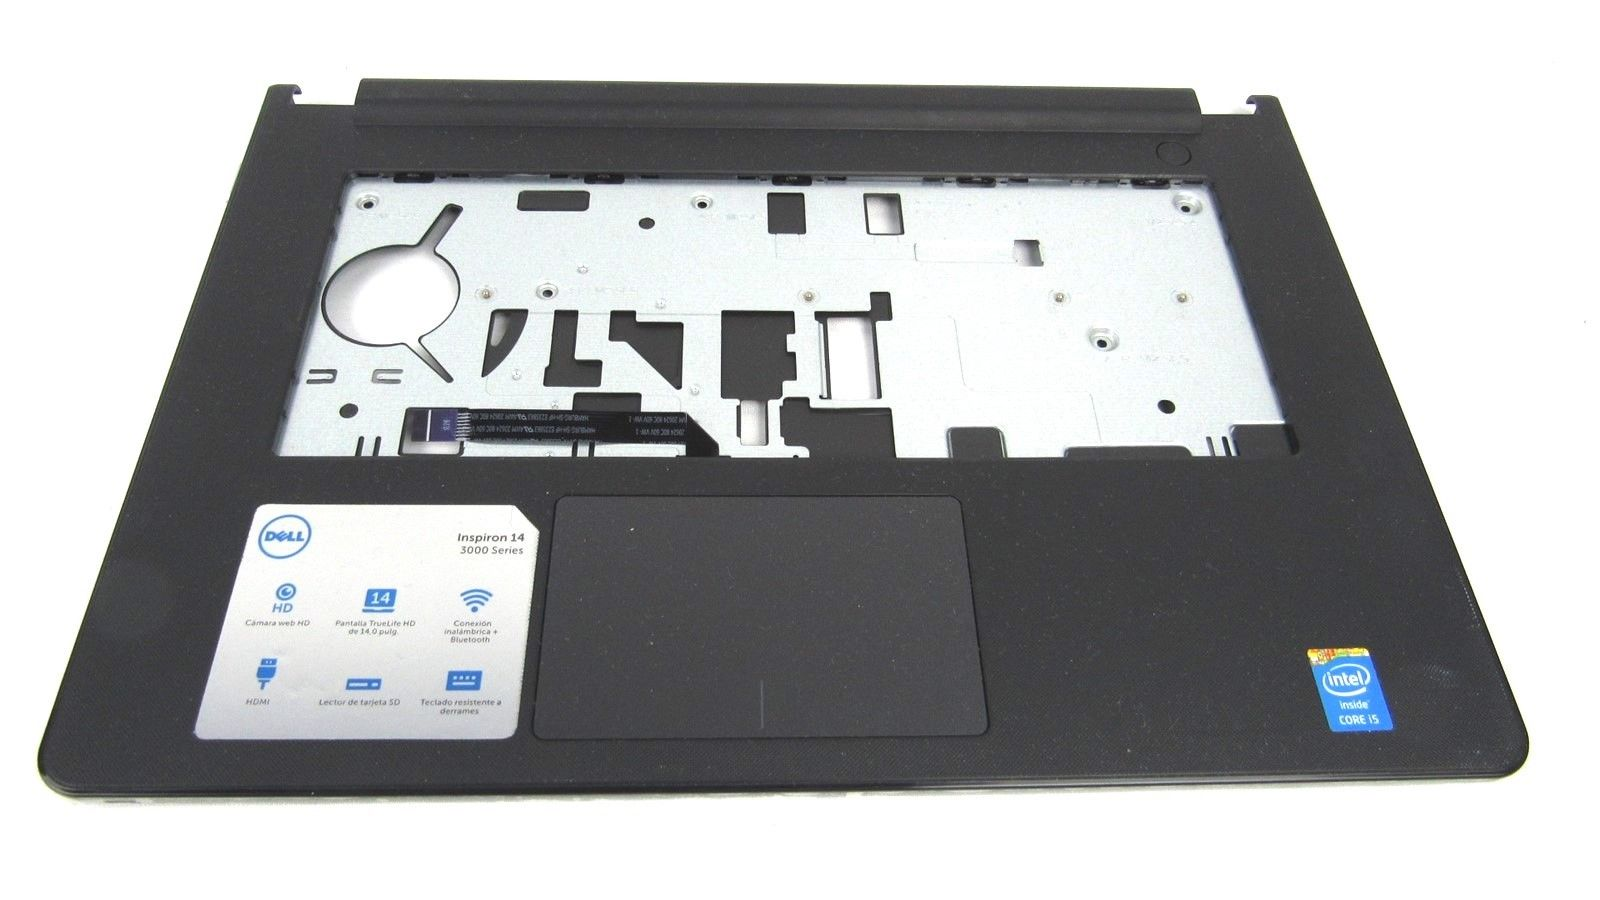 Dell Inspiron 3452 3458 Laptop Palmrest w/ TouchPad 460.03V0B.0001 JM5P2 0JM5P2